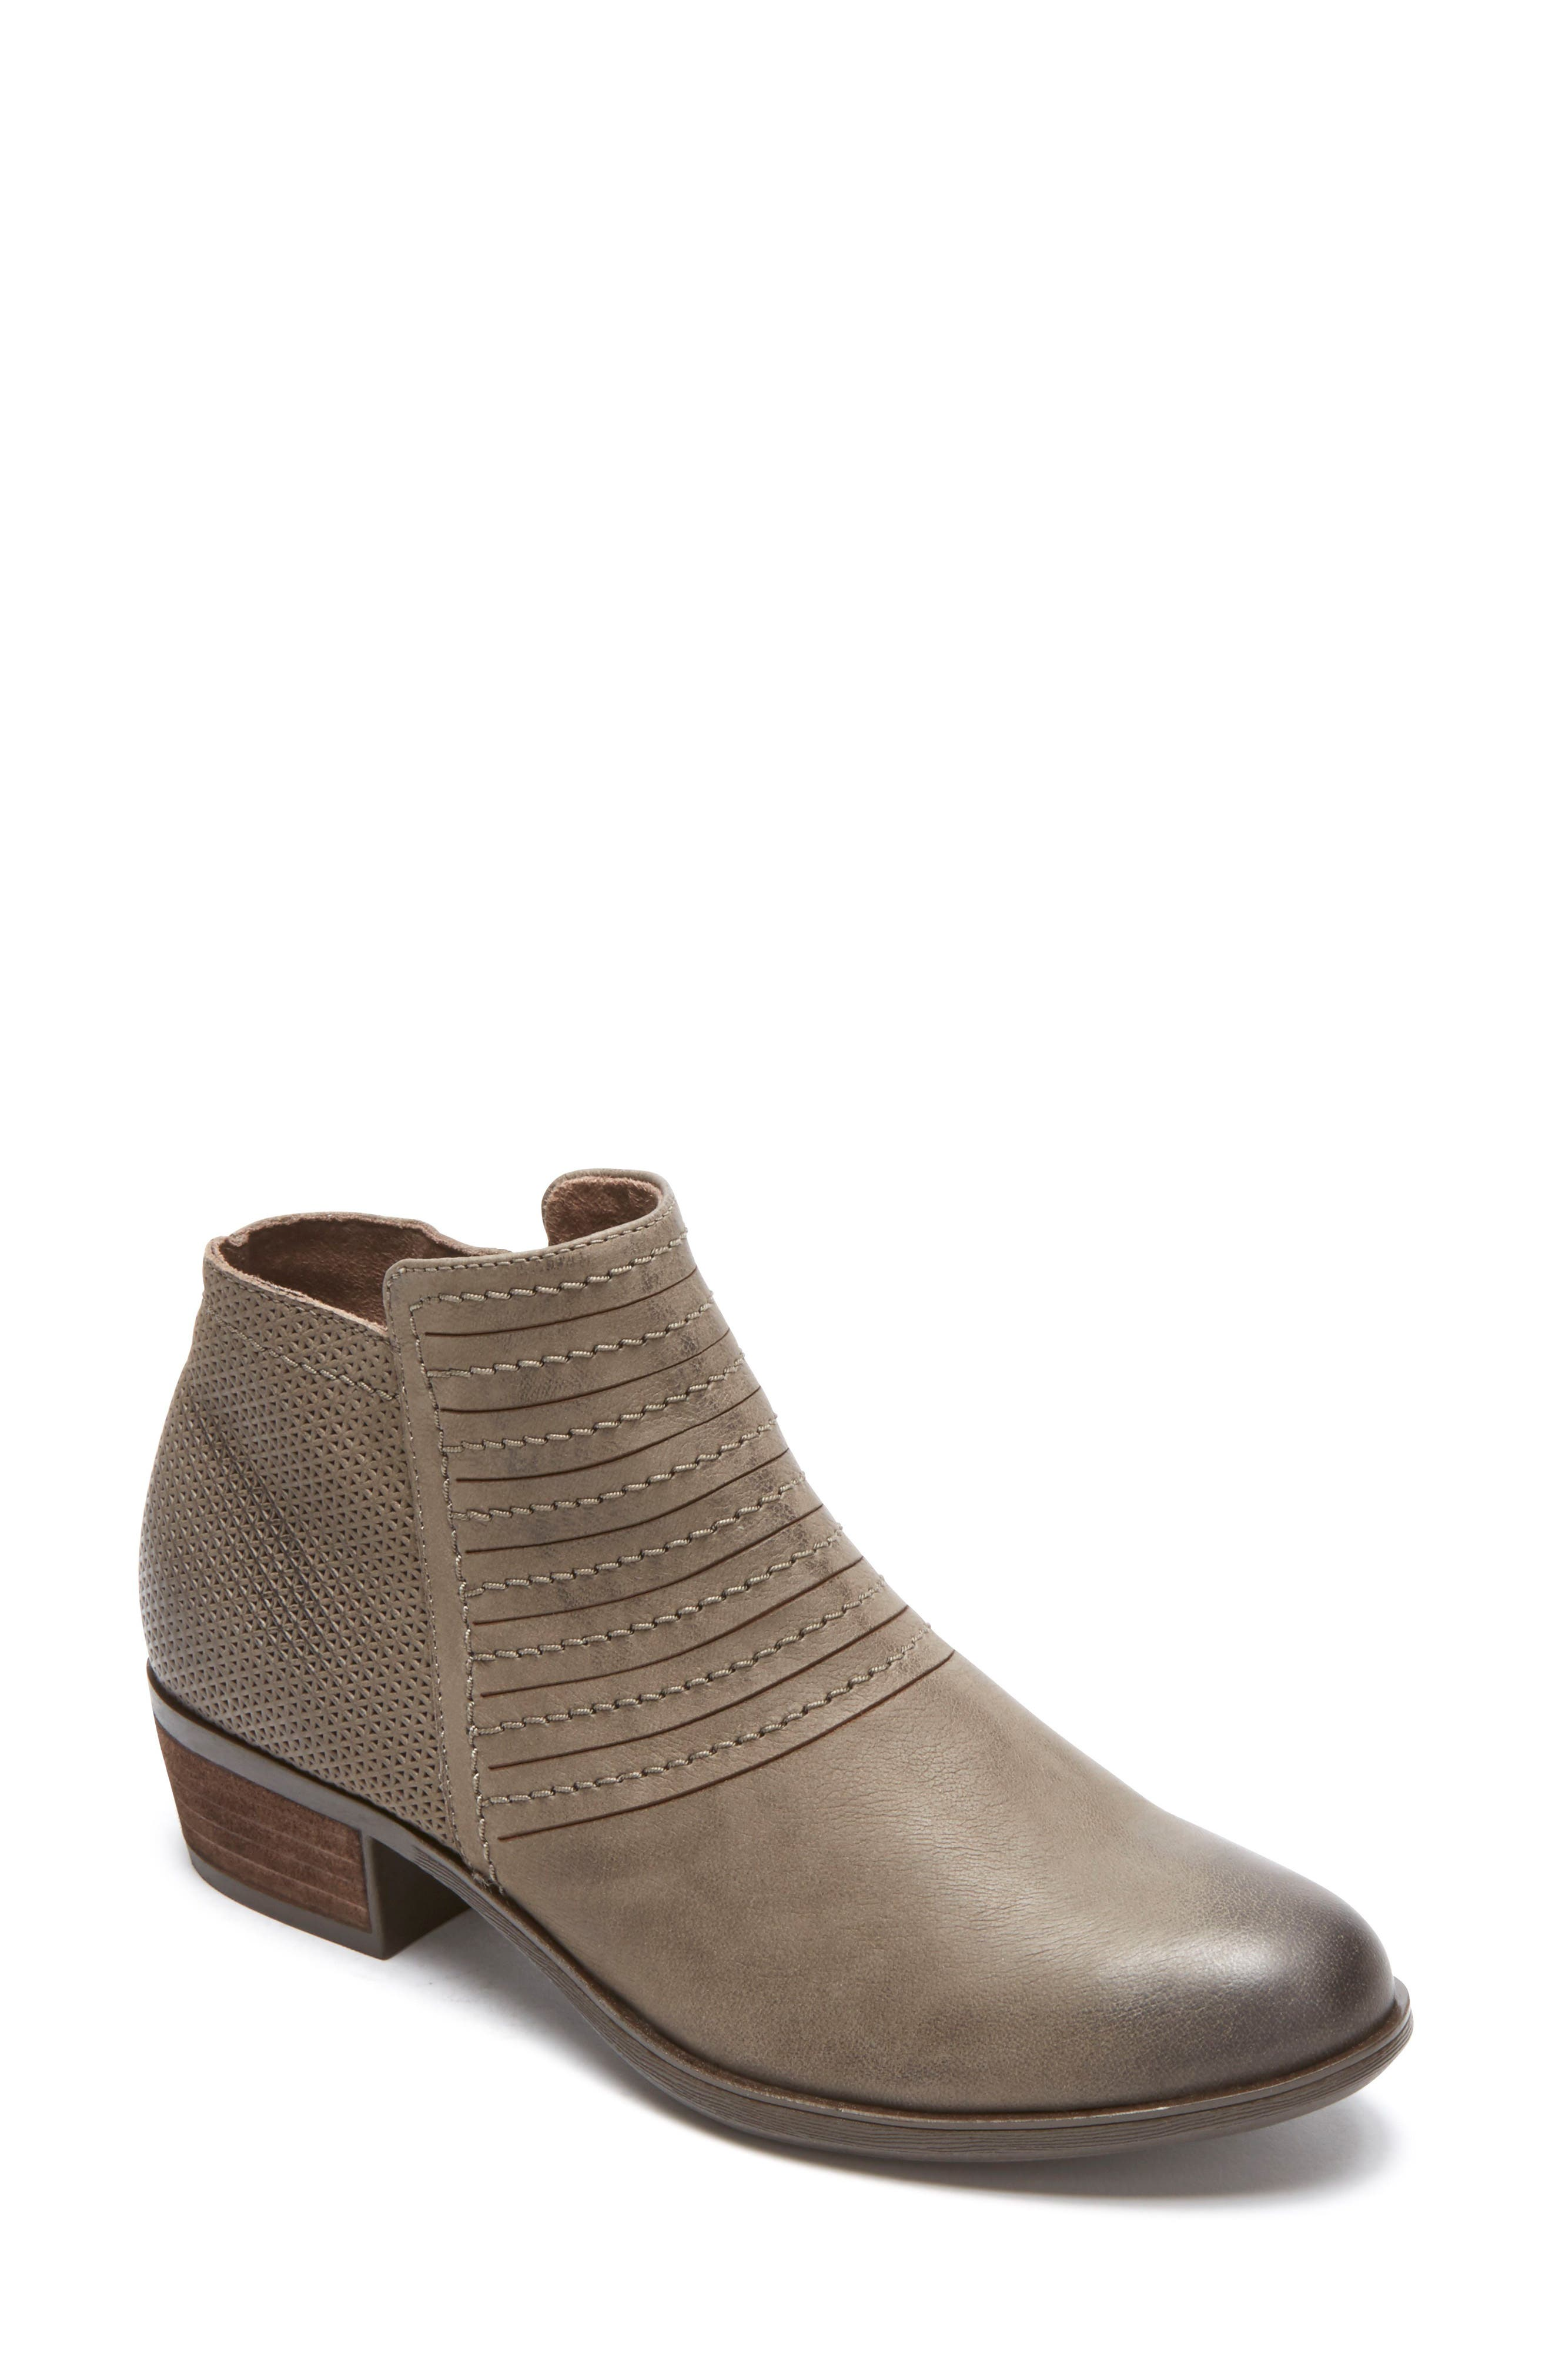 Rockport Vanna Strappy Bootie- Grey